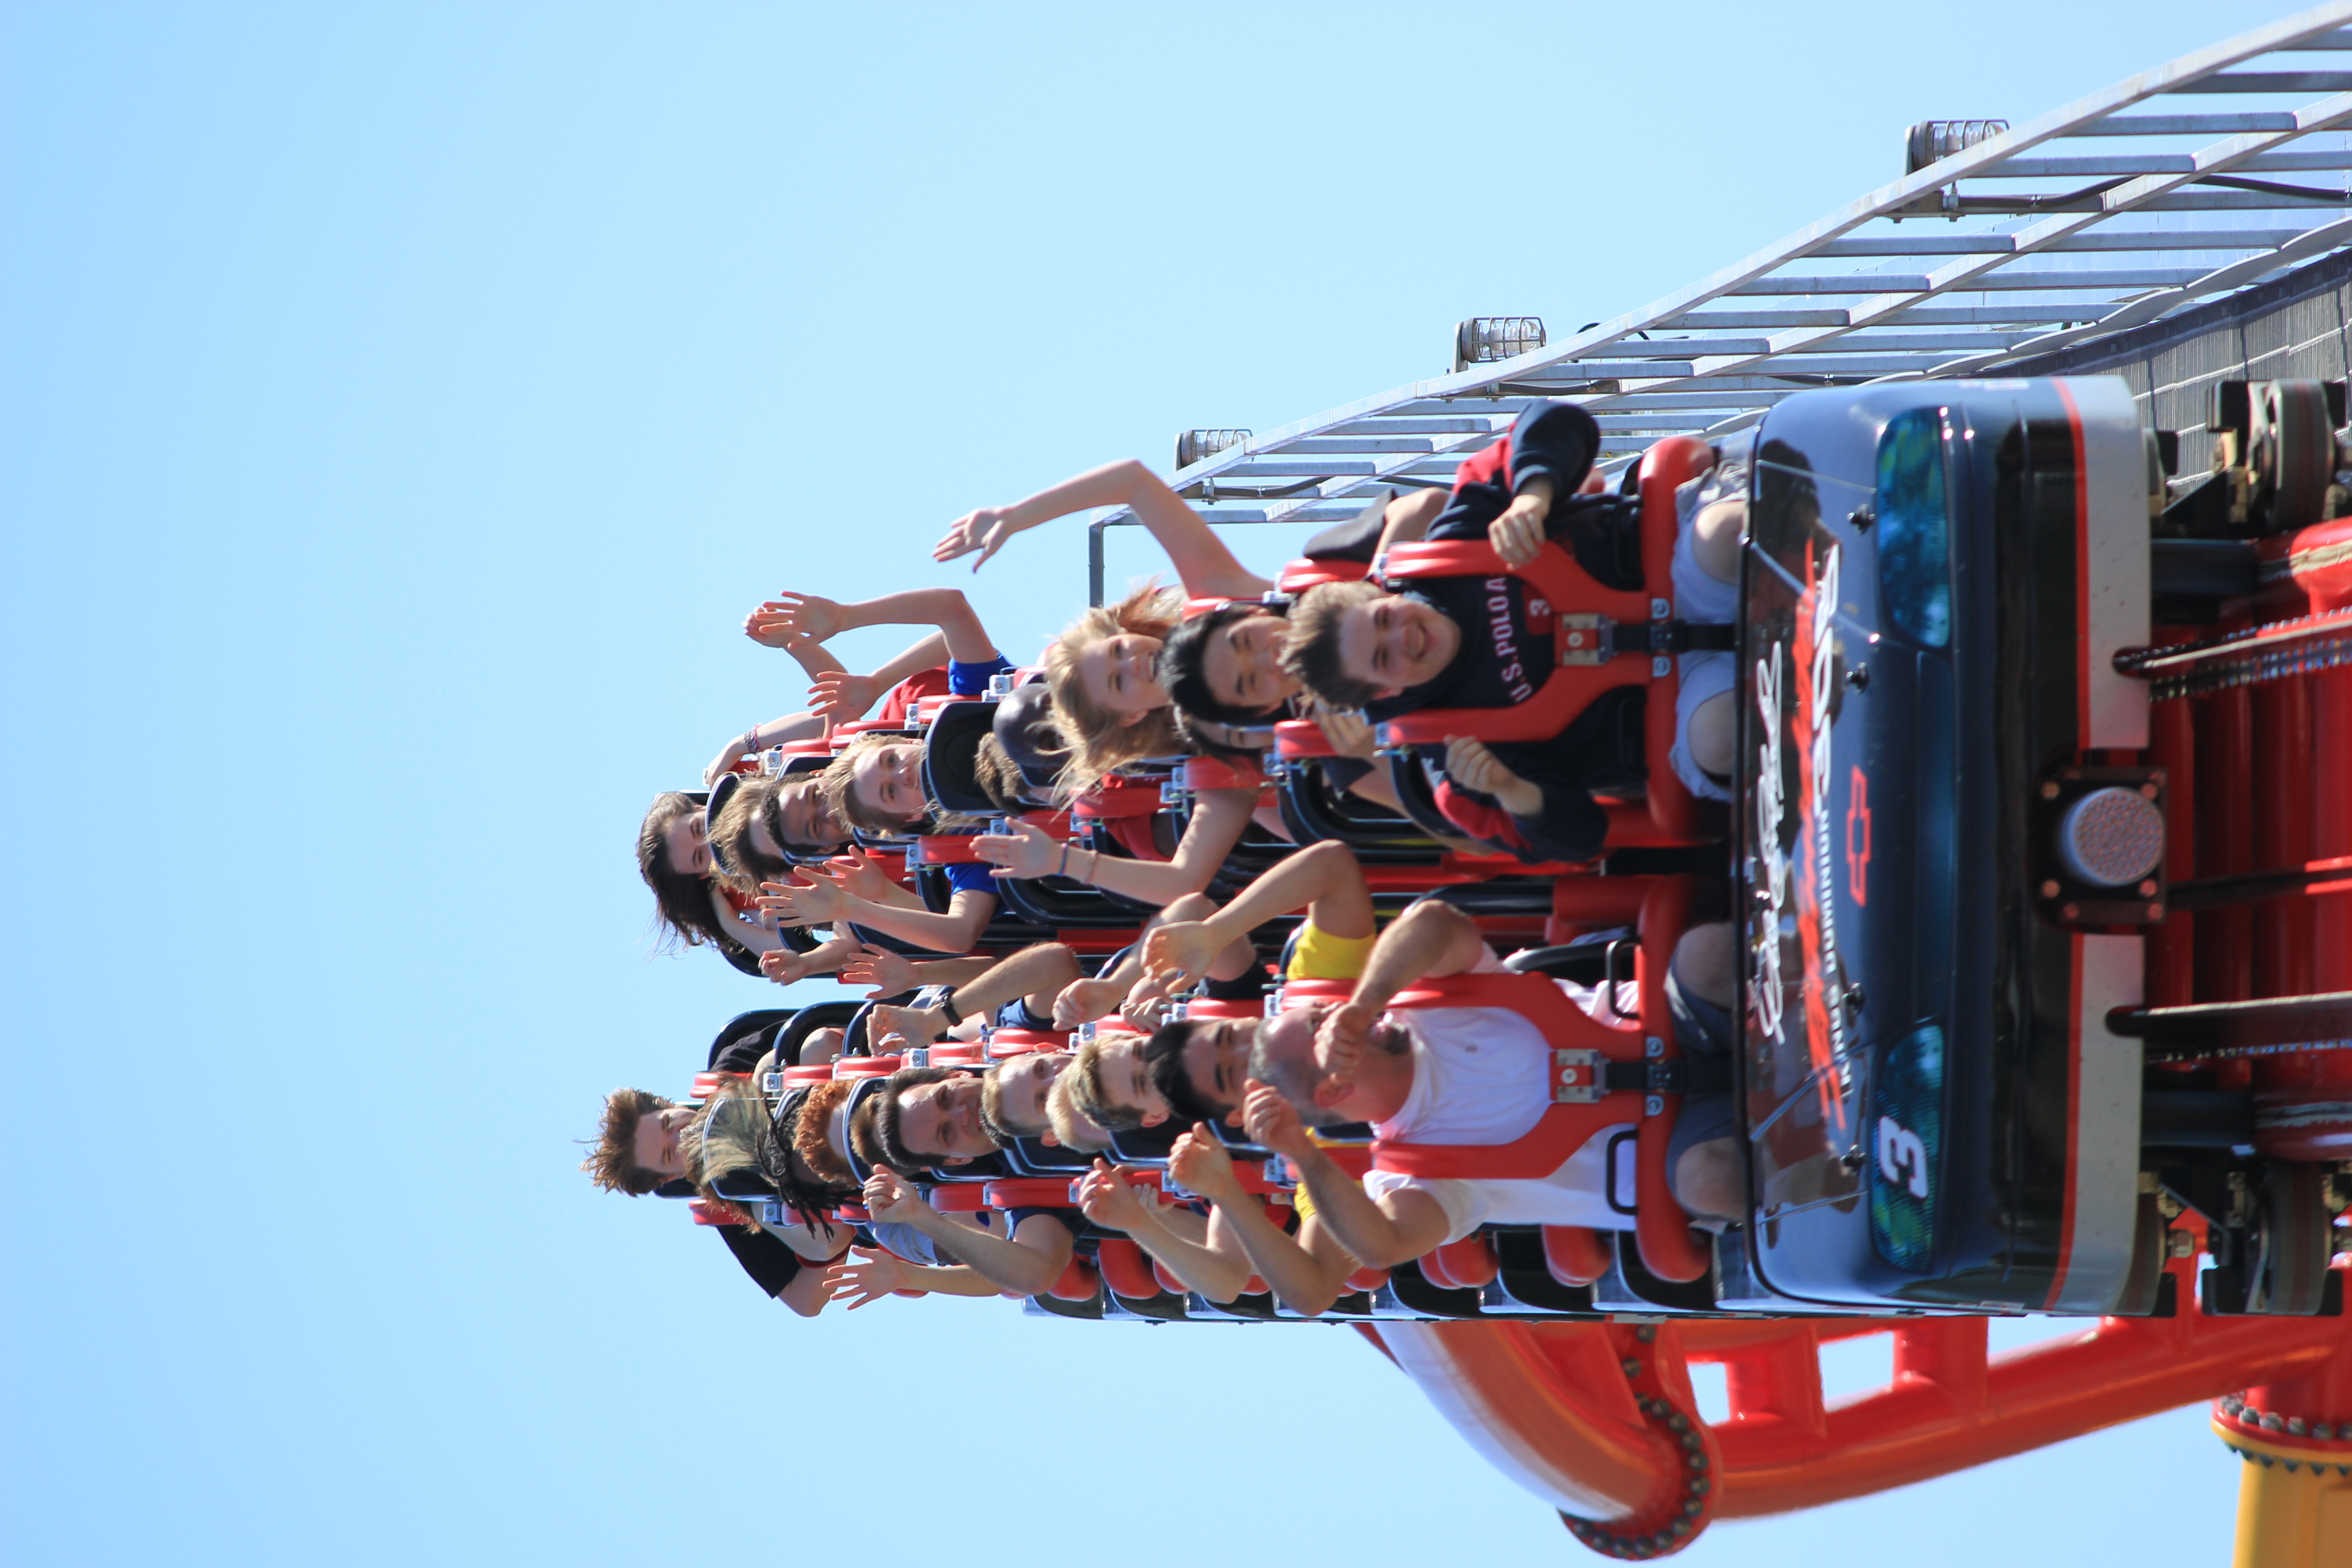 Intimidator 305 train at end of track | Flickr - Photo ...